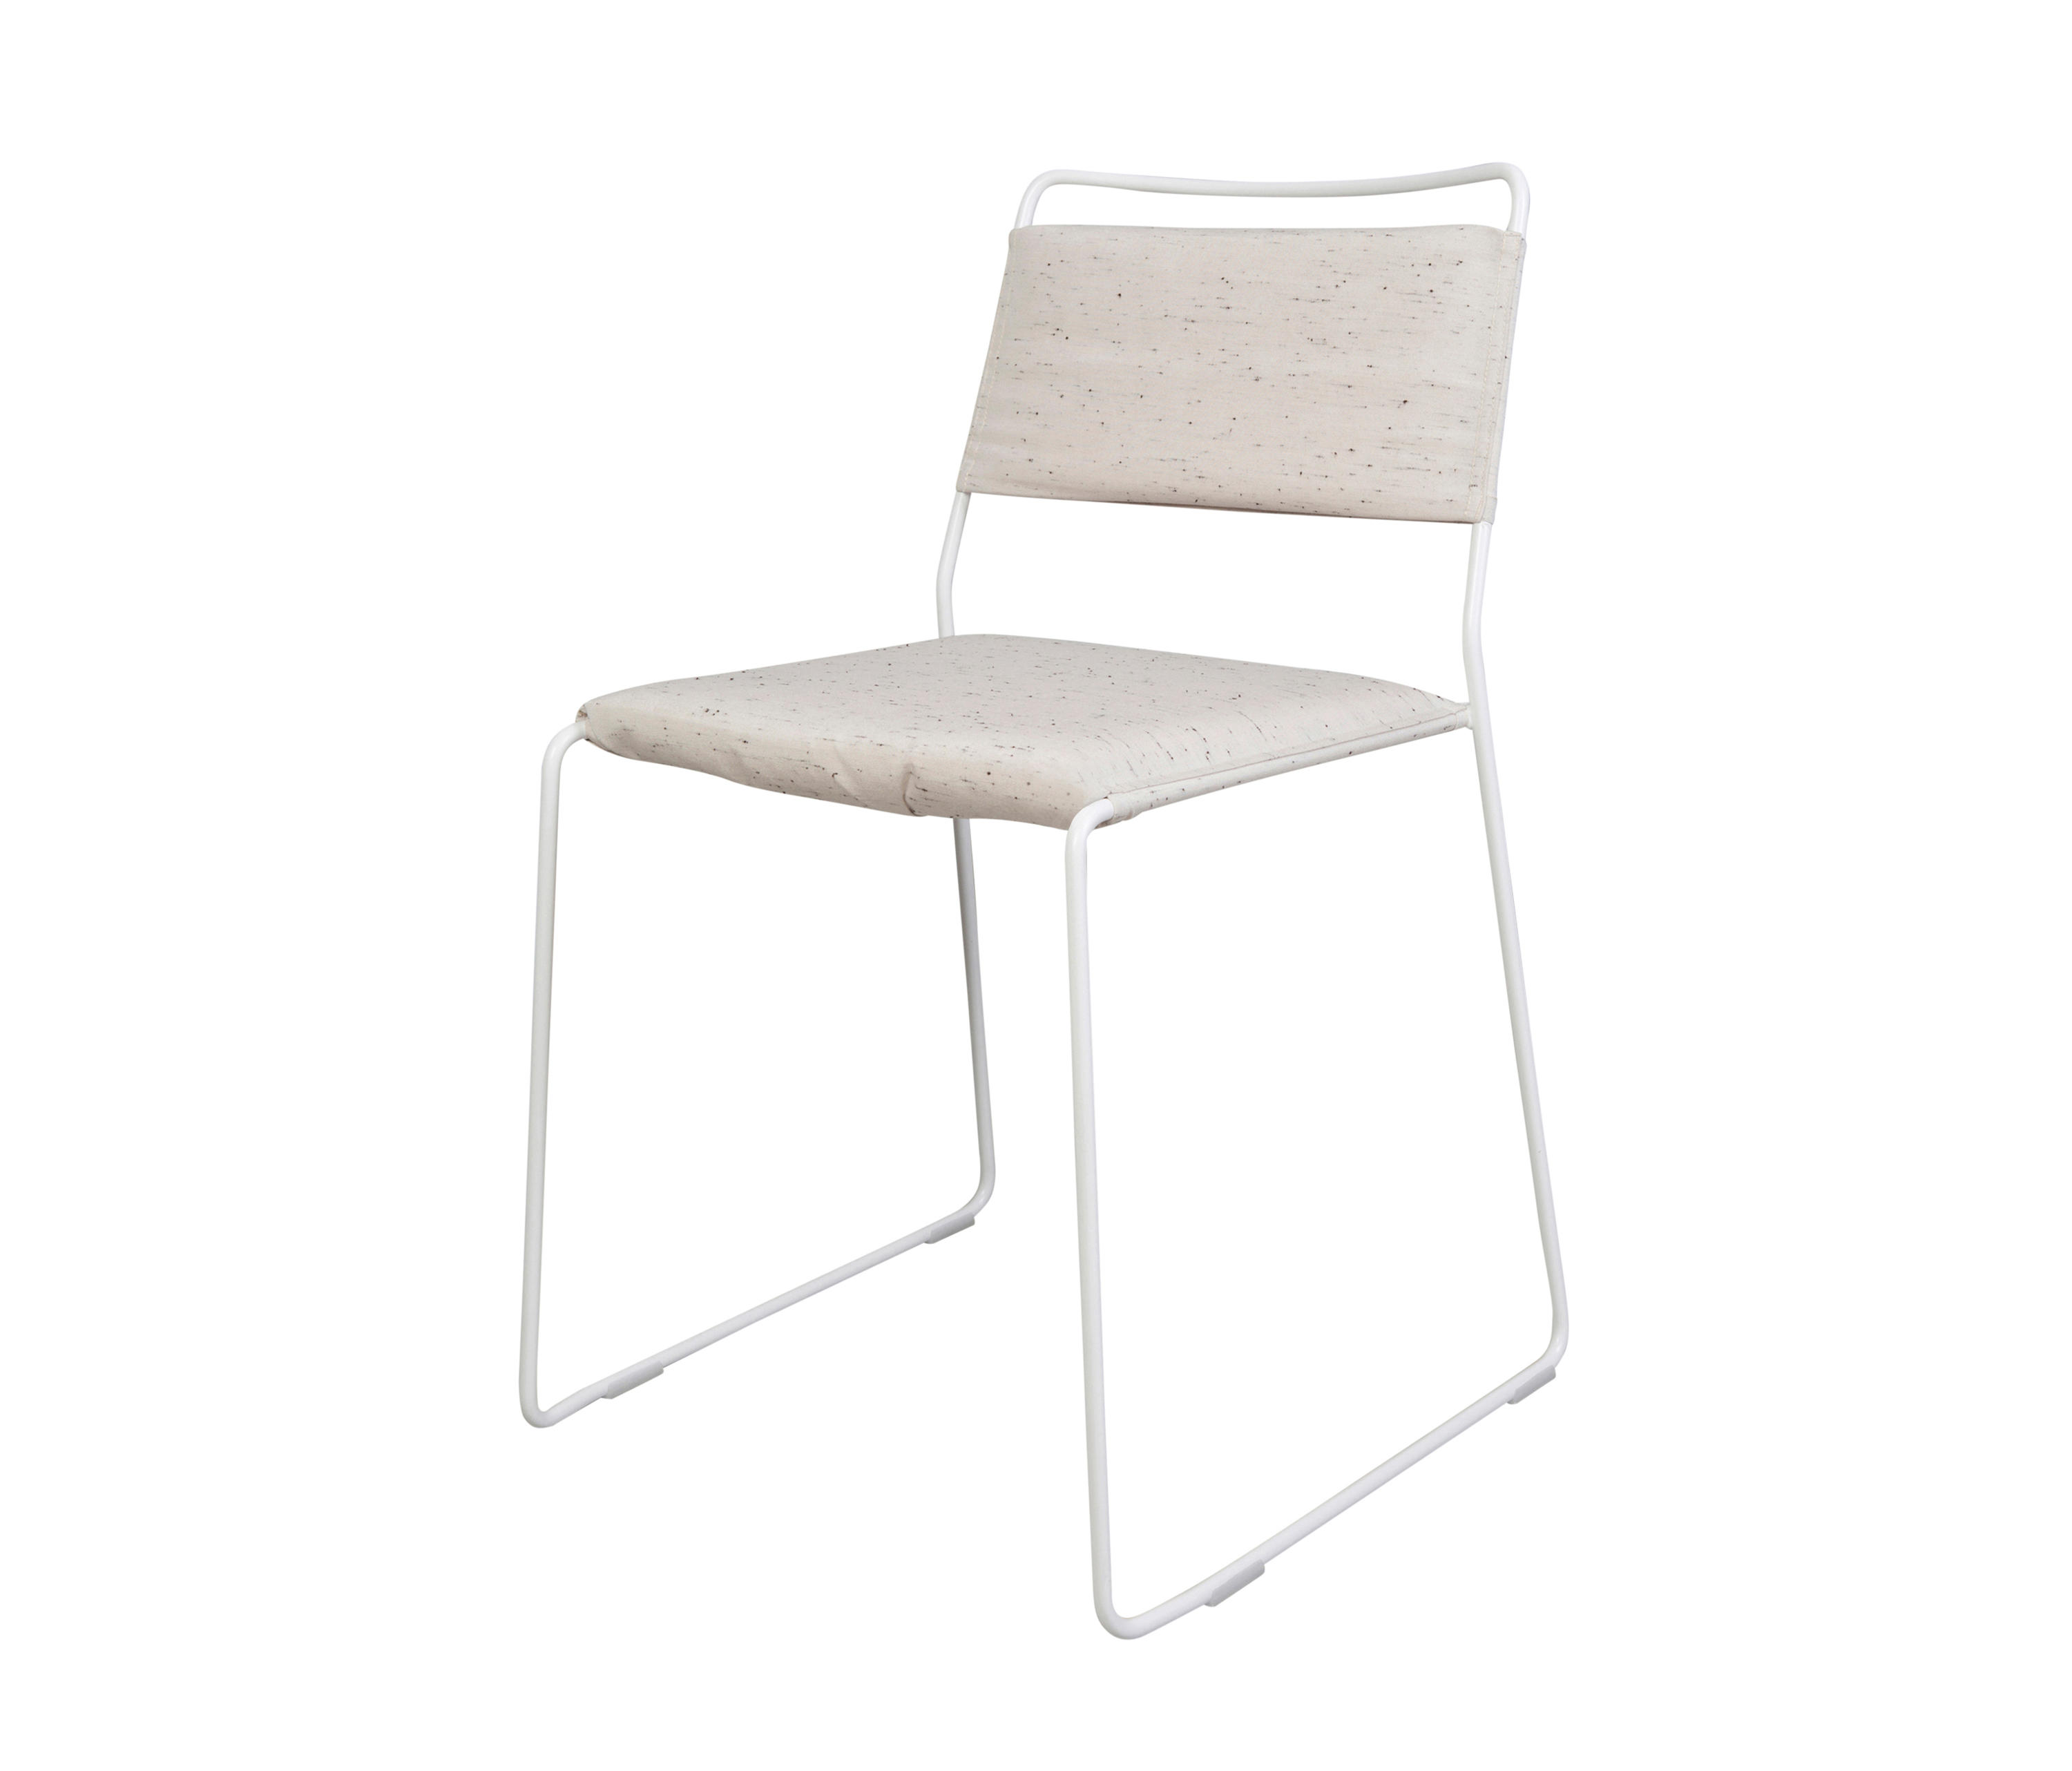 Designer Wire Chair One Wire Chair Chairs From Ok Design Architonic